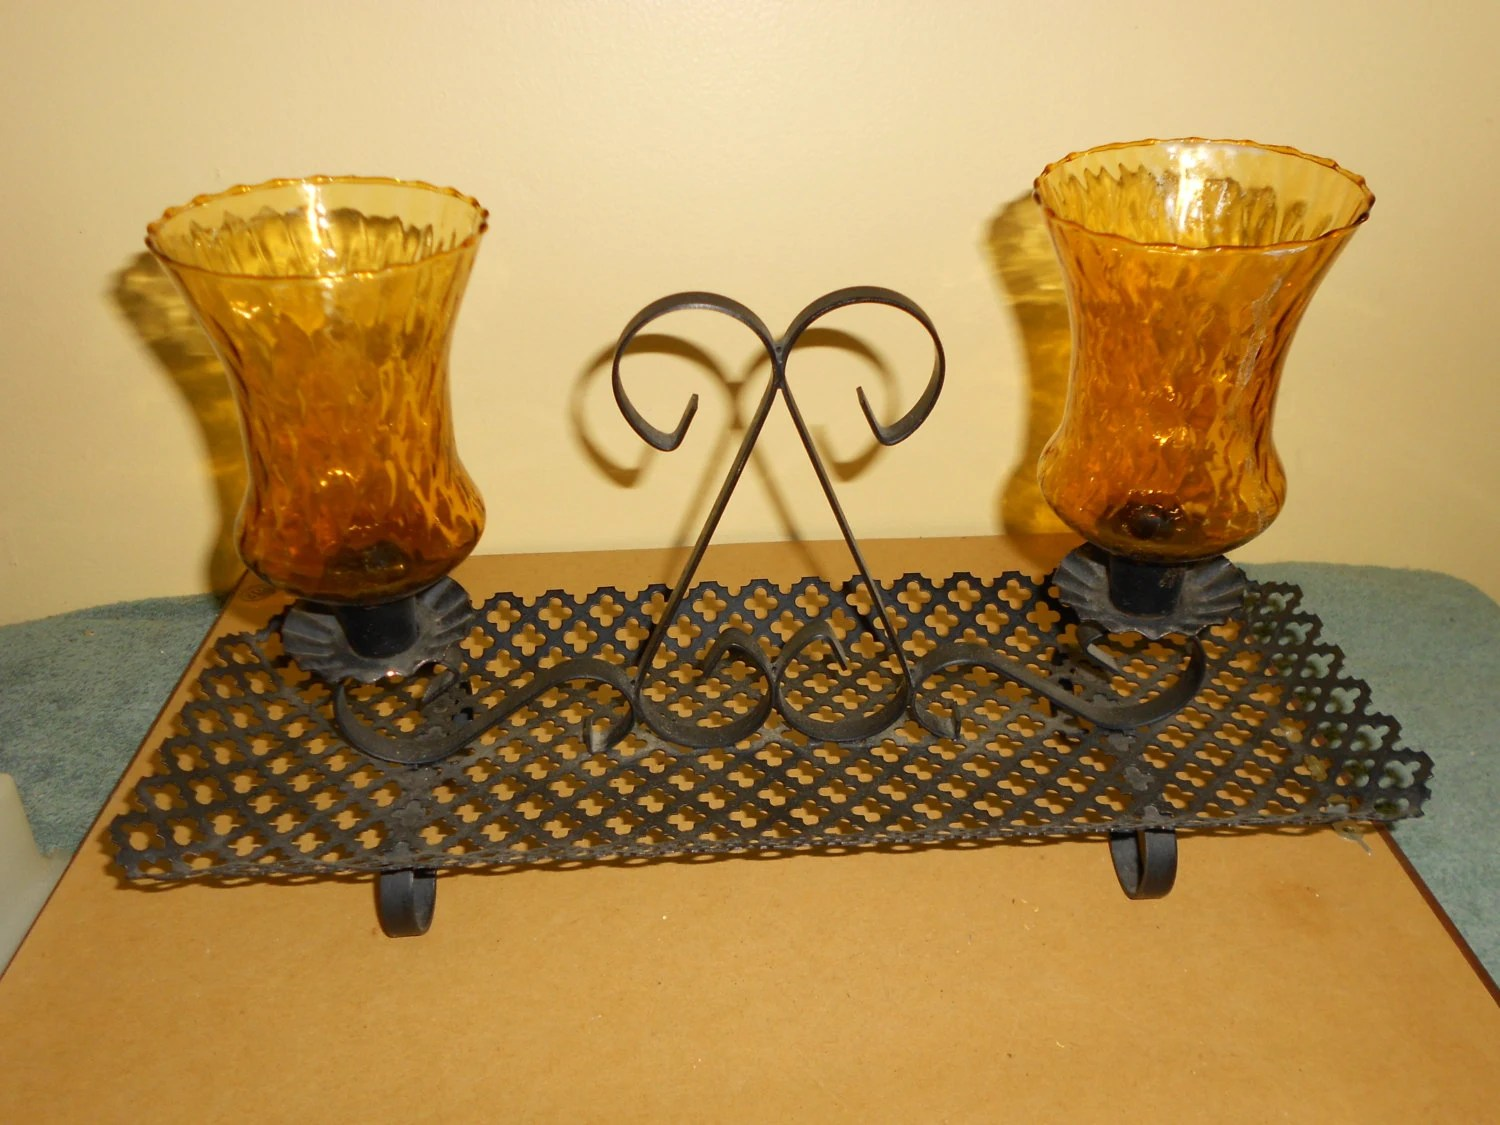 Black Metal Candle Holder wrought Iron with by pamscrafts7631 on Black Wrought Iron Wall Candle Holders id=69844